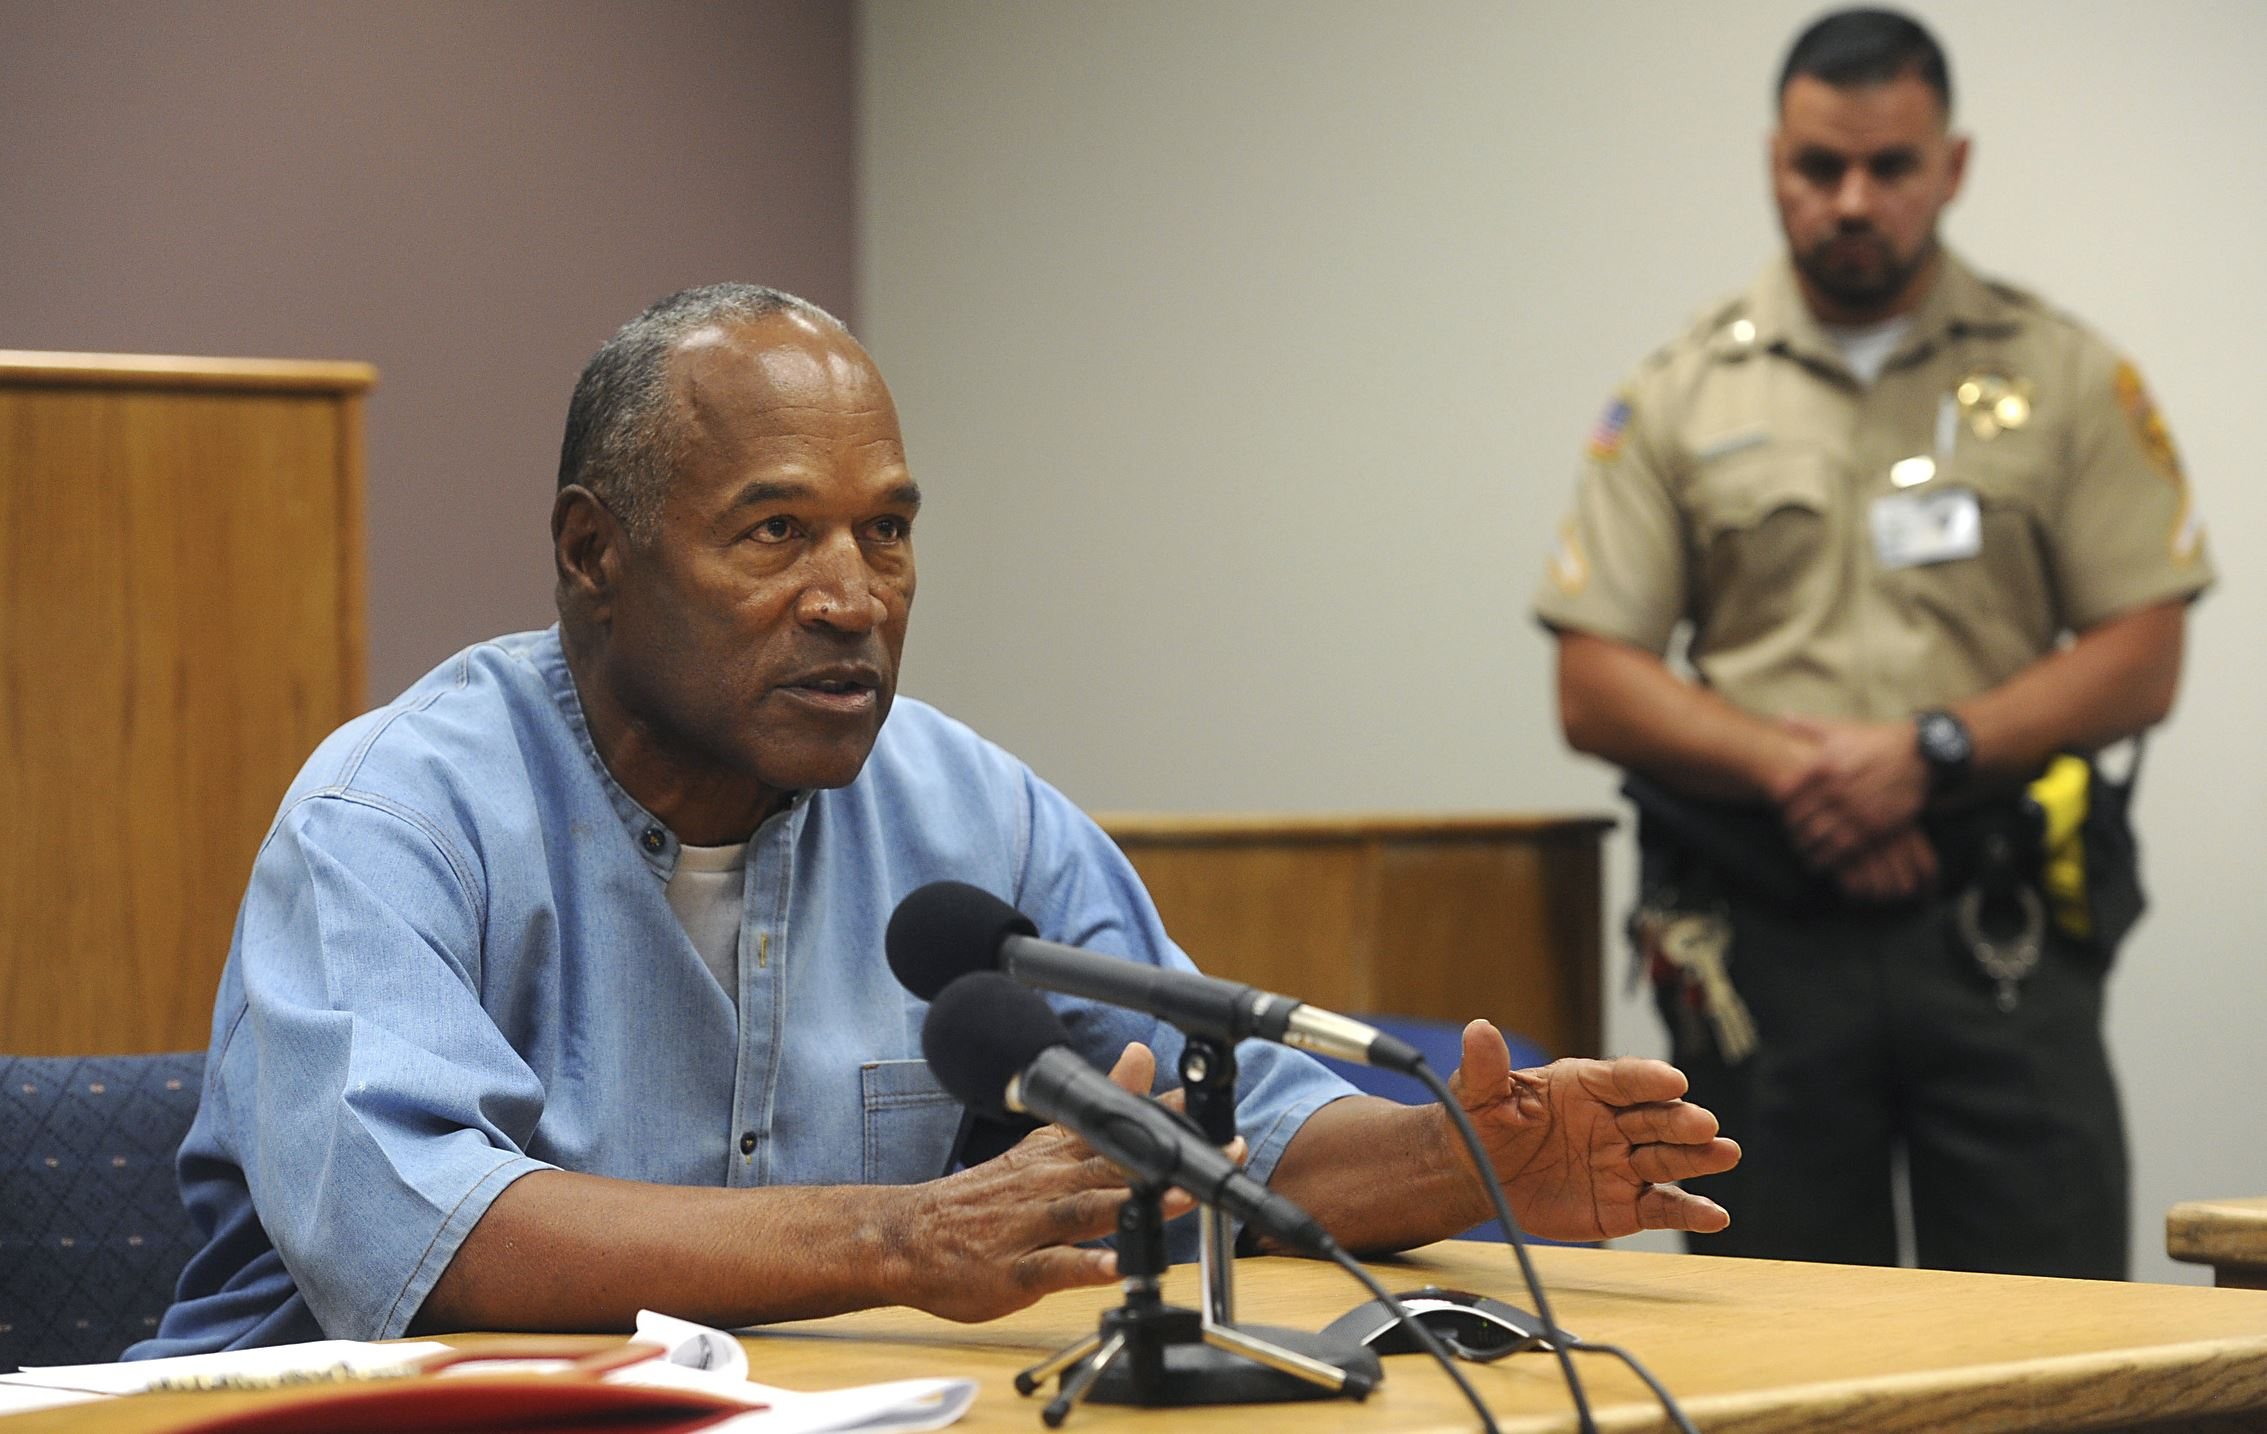 Simpson in Protective Custody After Parole Hearing